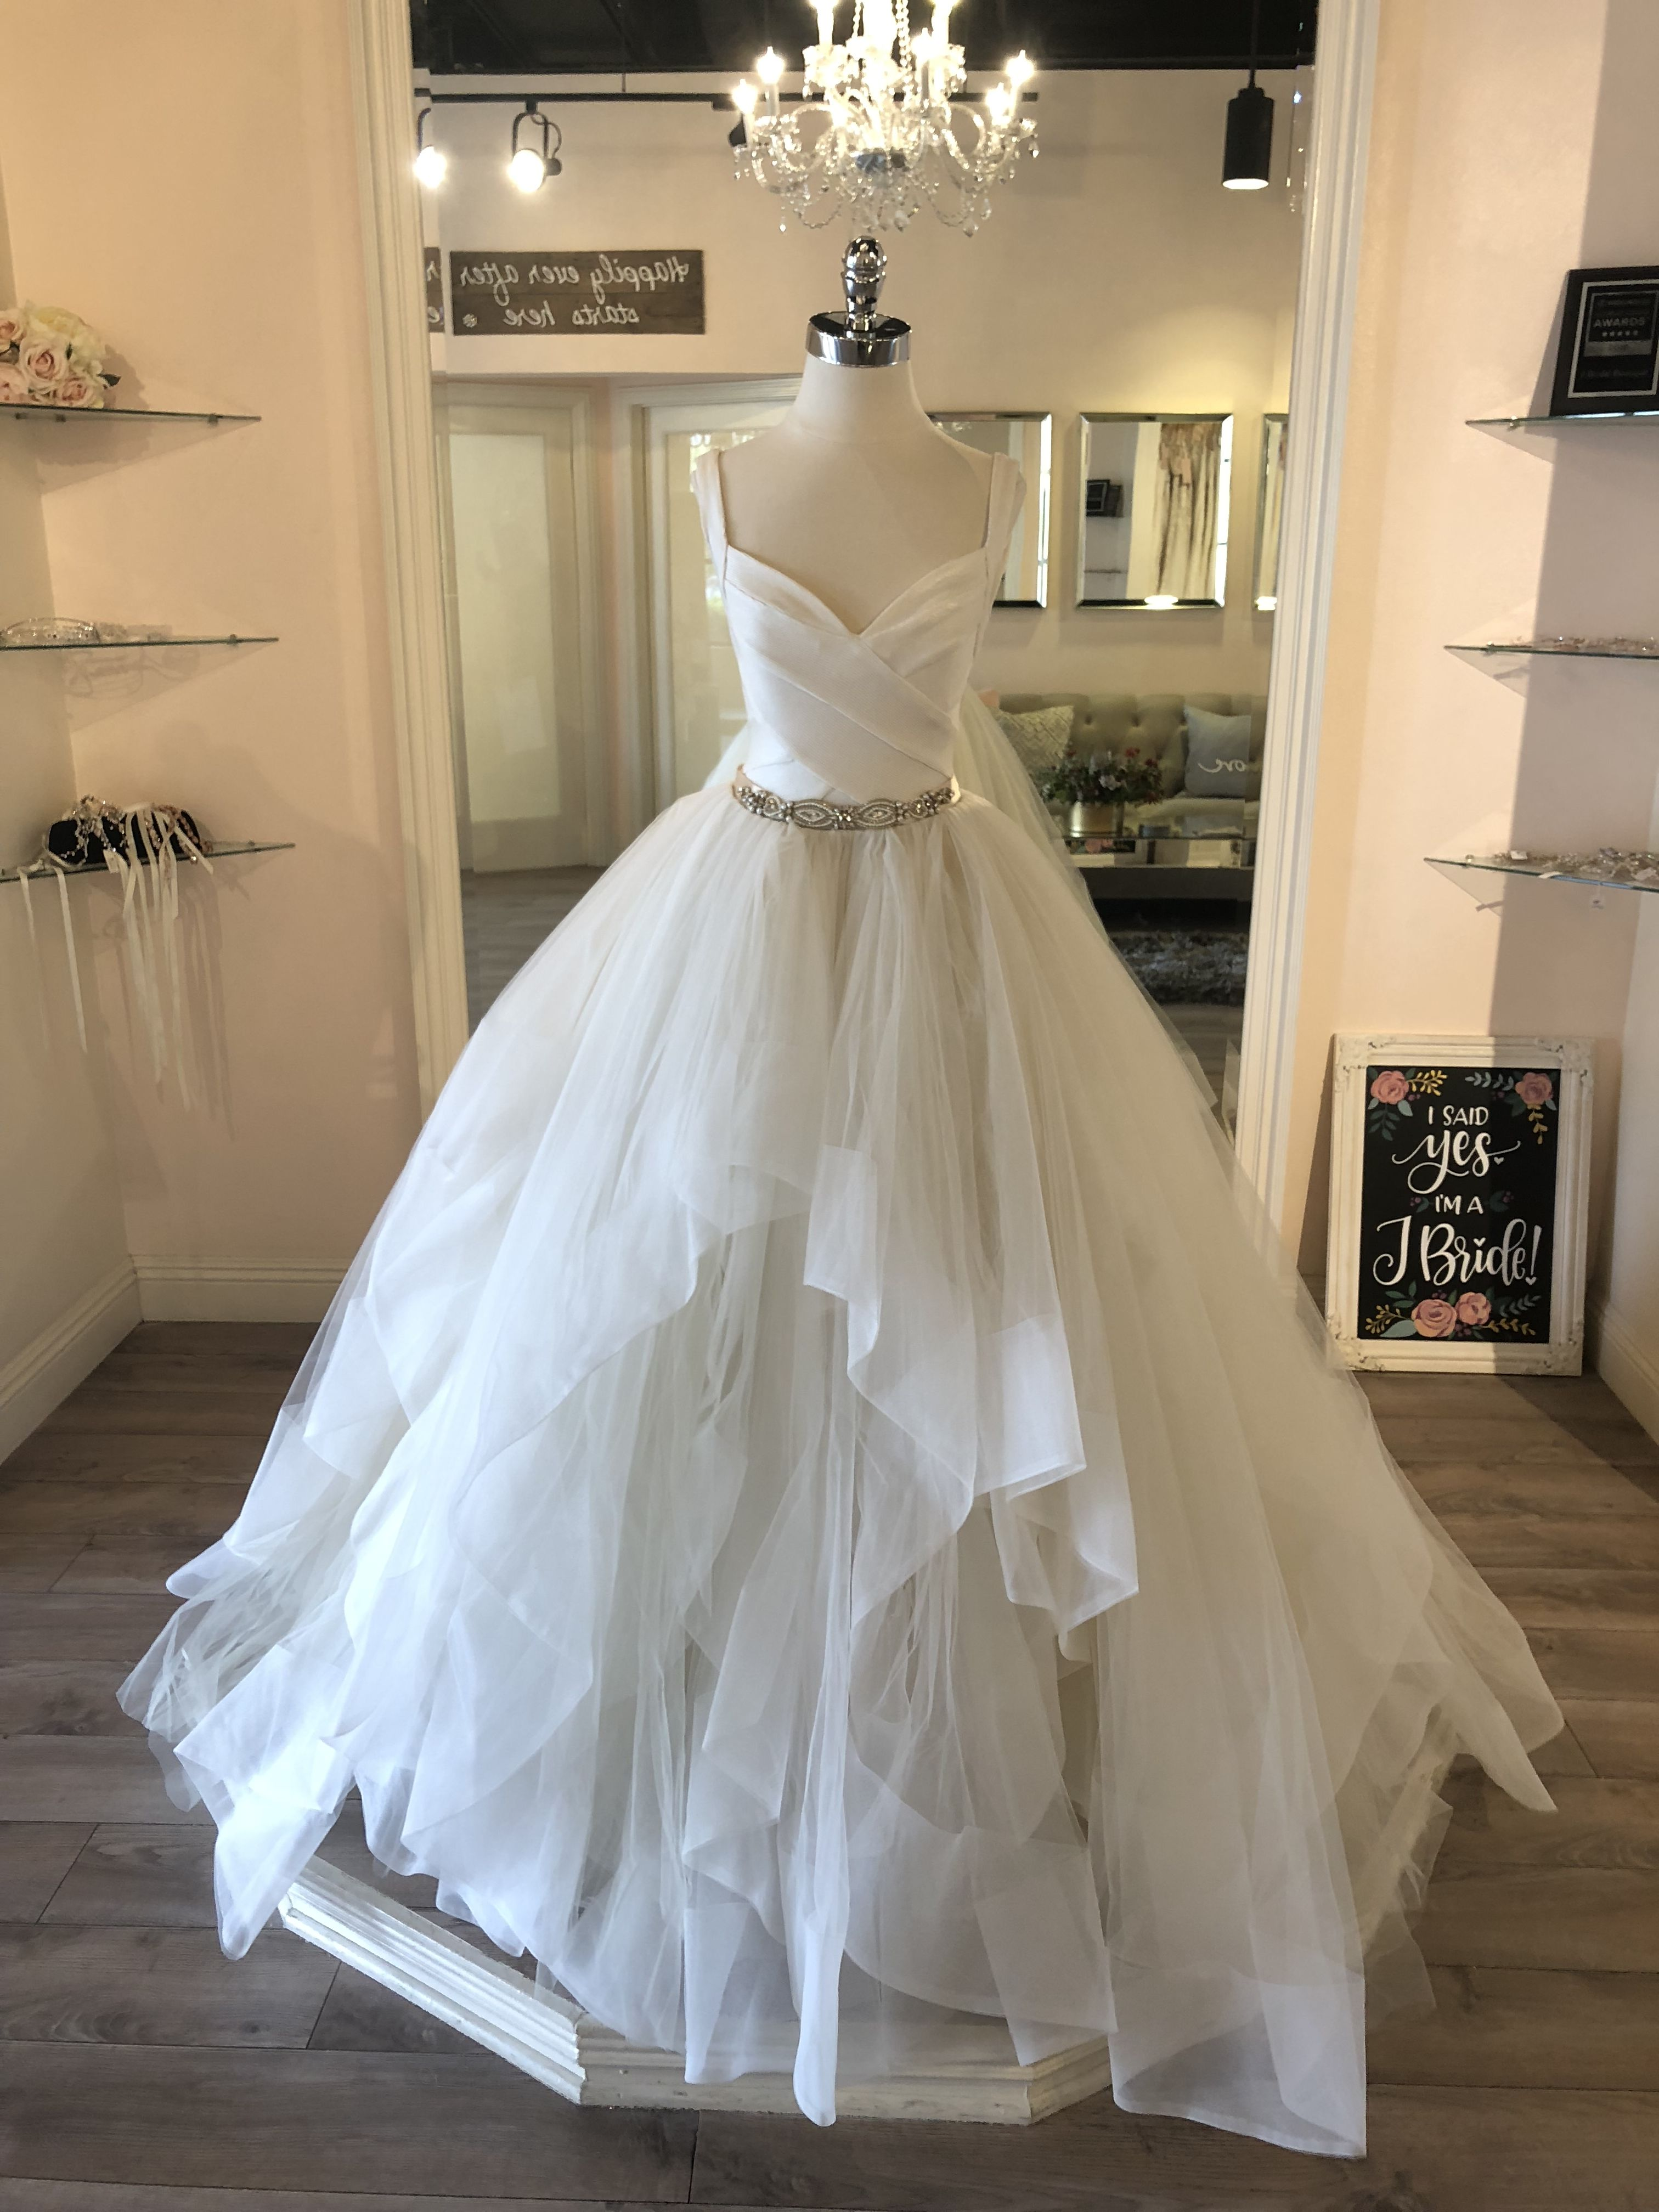 e80d90e6a20 Hayley Paige Bowie   McCartney Ballgown with removable tulle skirt and  bandage opalescent mini dress   2 piece wedding dress    weddingdress   hayleypaige